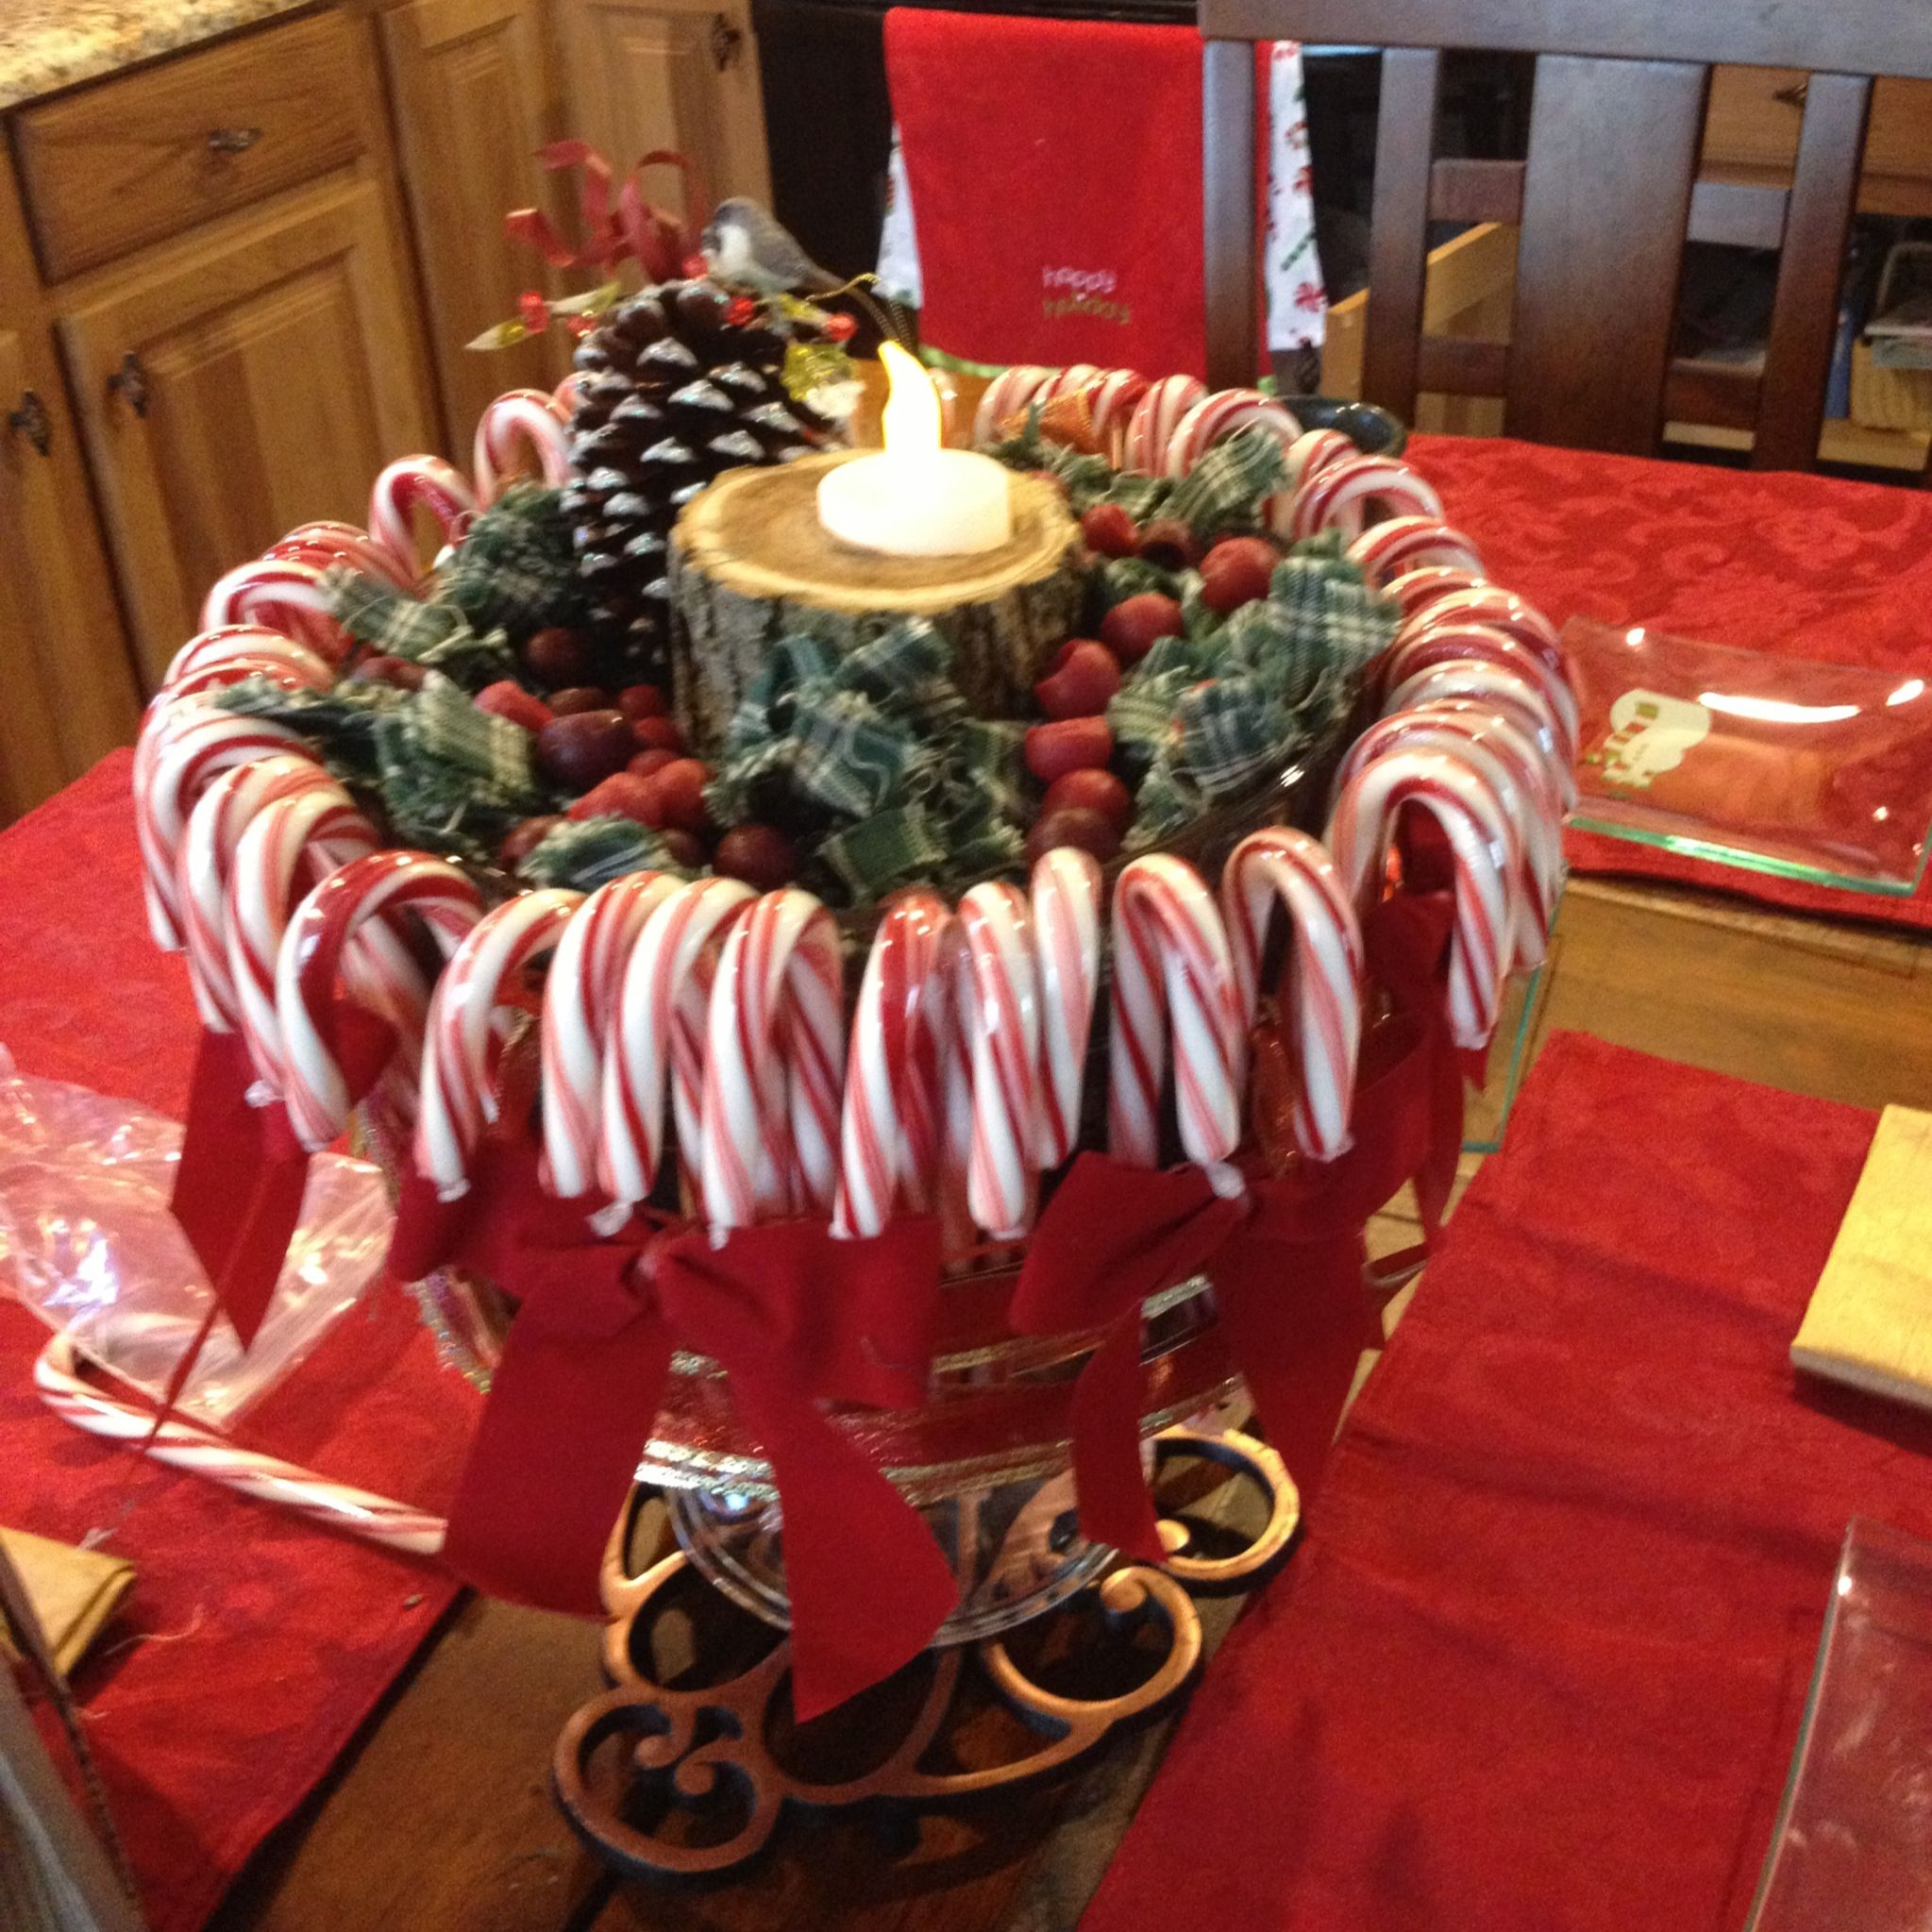 Christmas centerpiece about candycanes attached to a